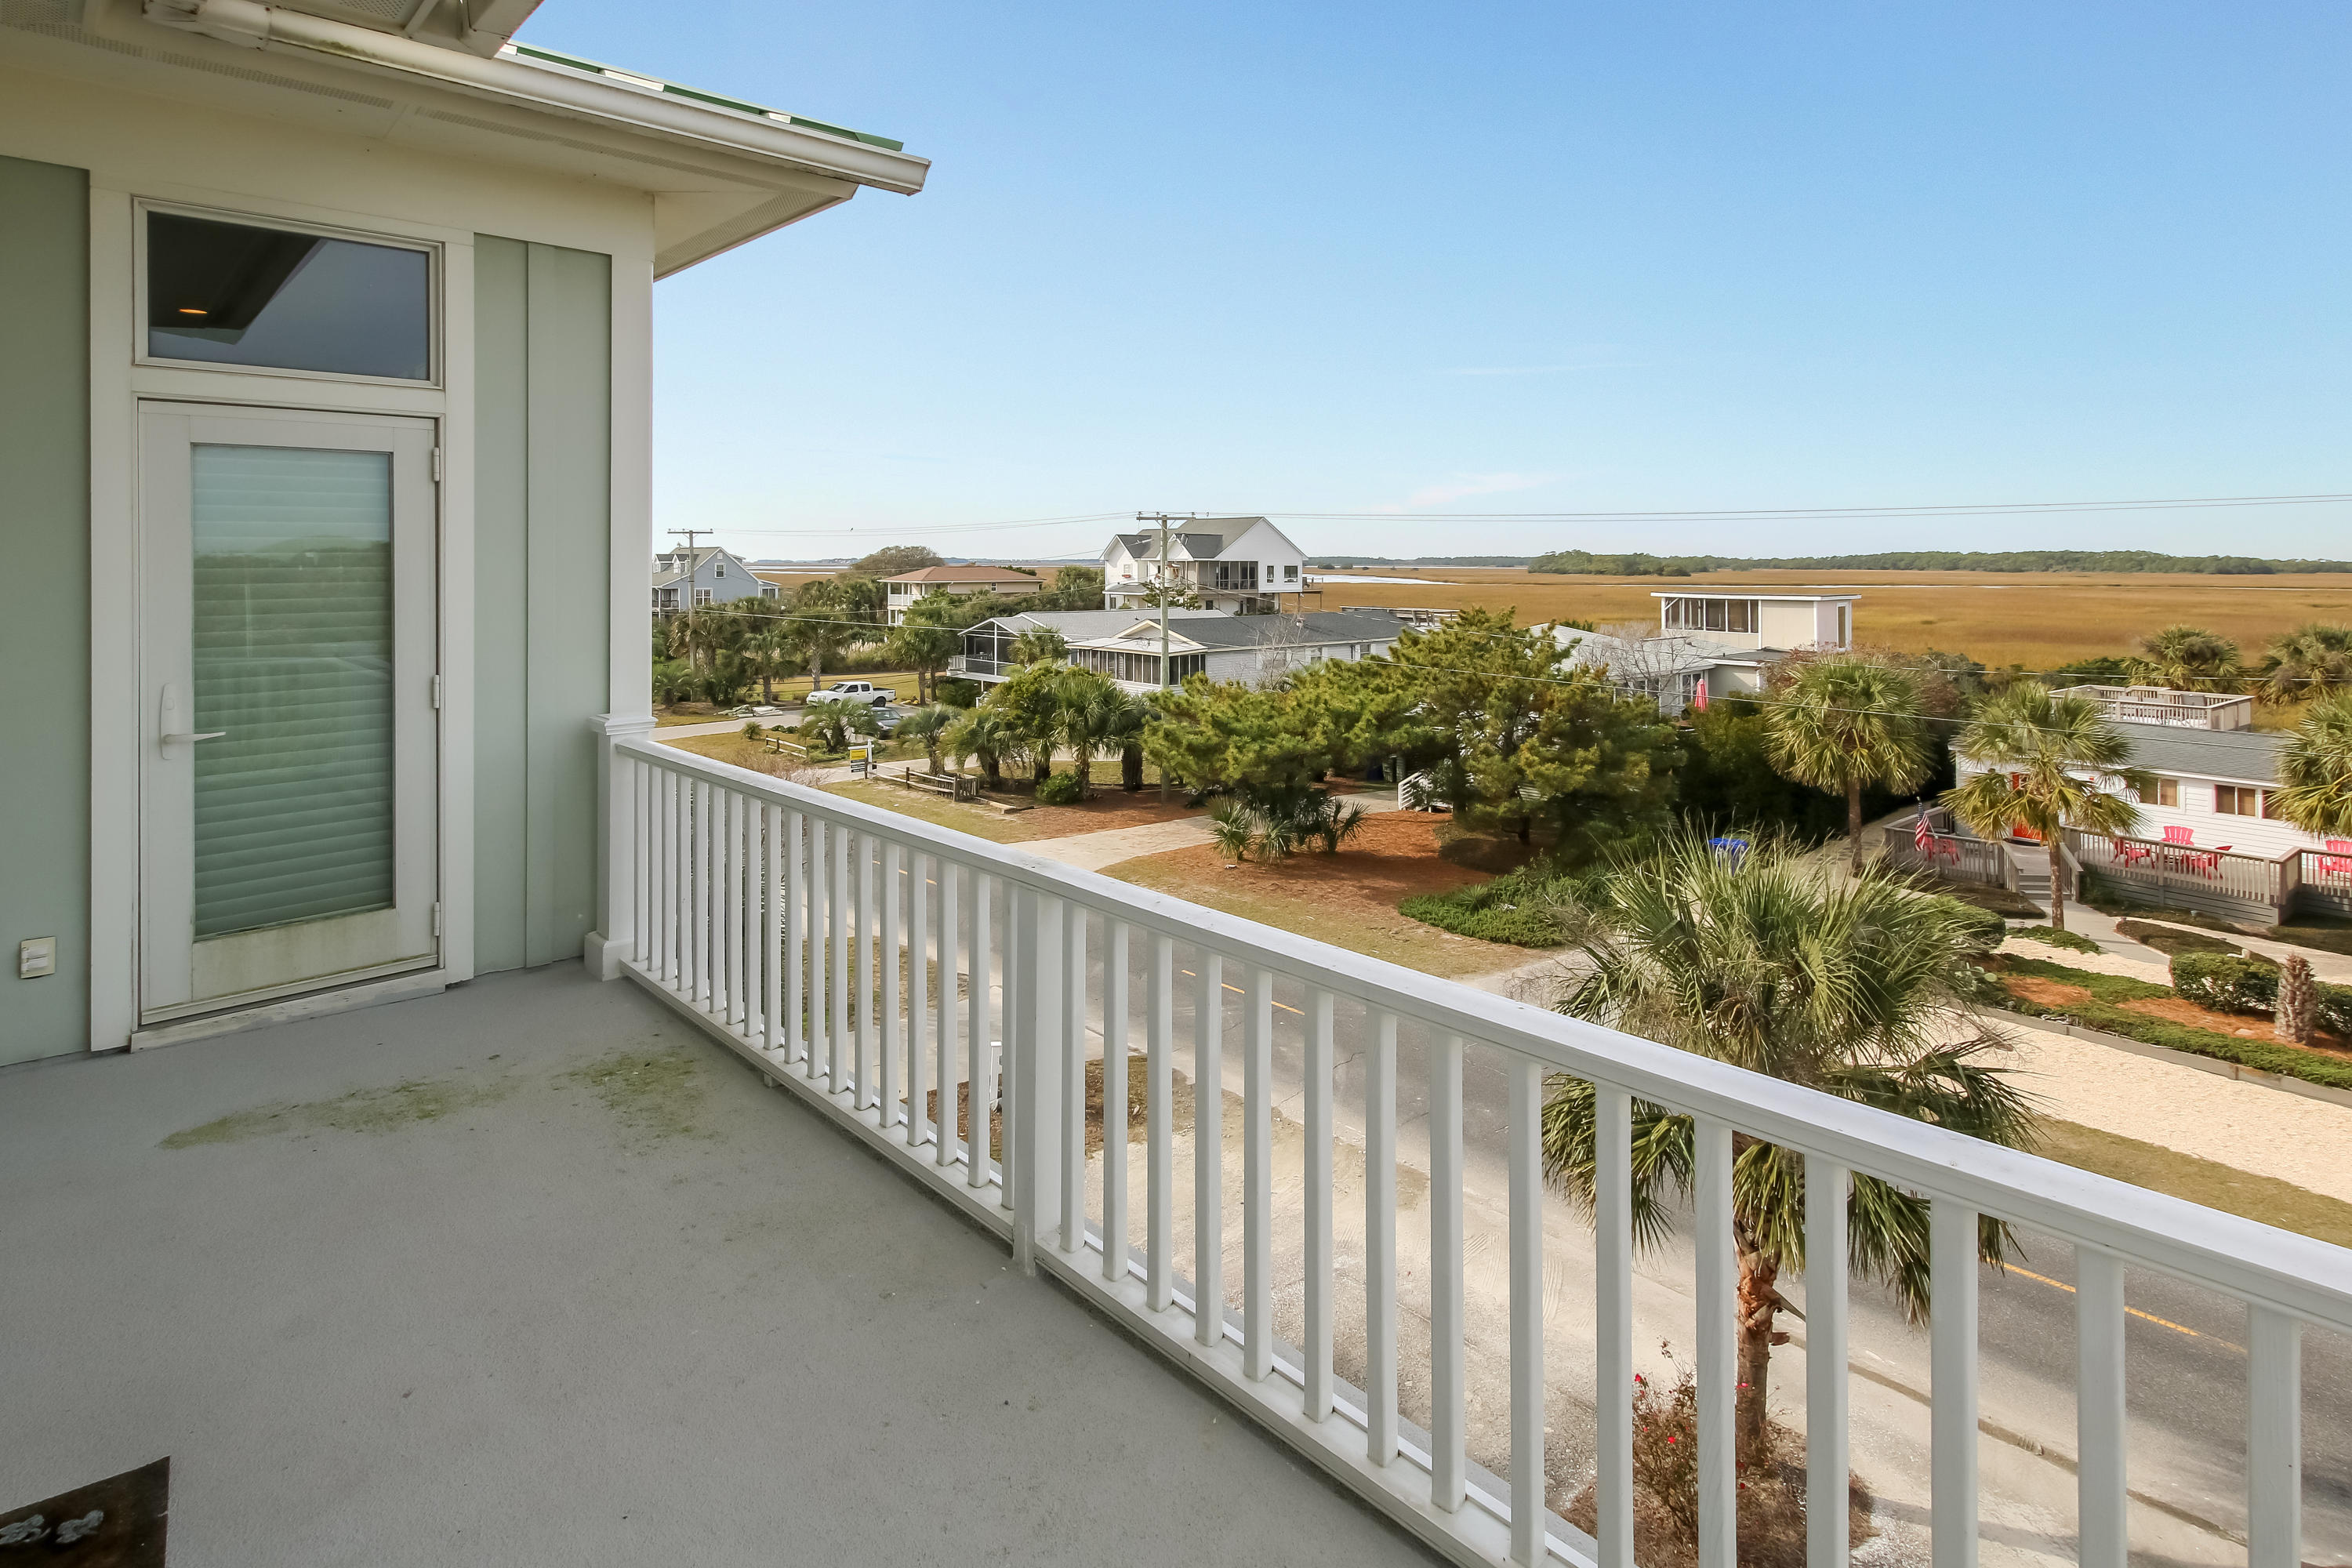 East Folly Beach Shores Homes For Sale - 1681 Ashley A, Folly Beach, SC - 29